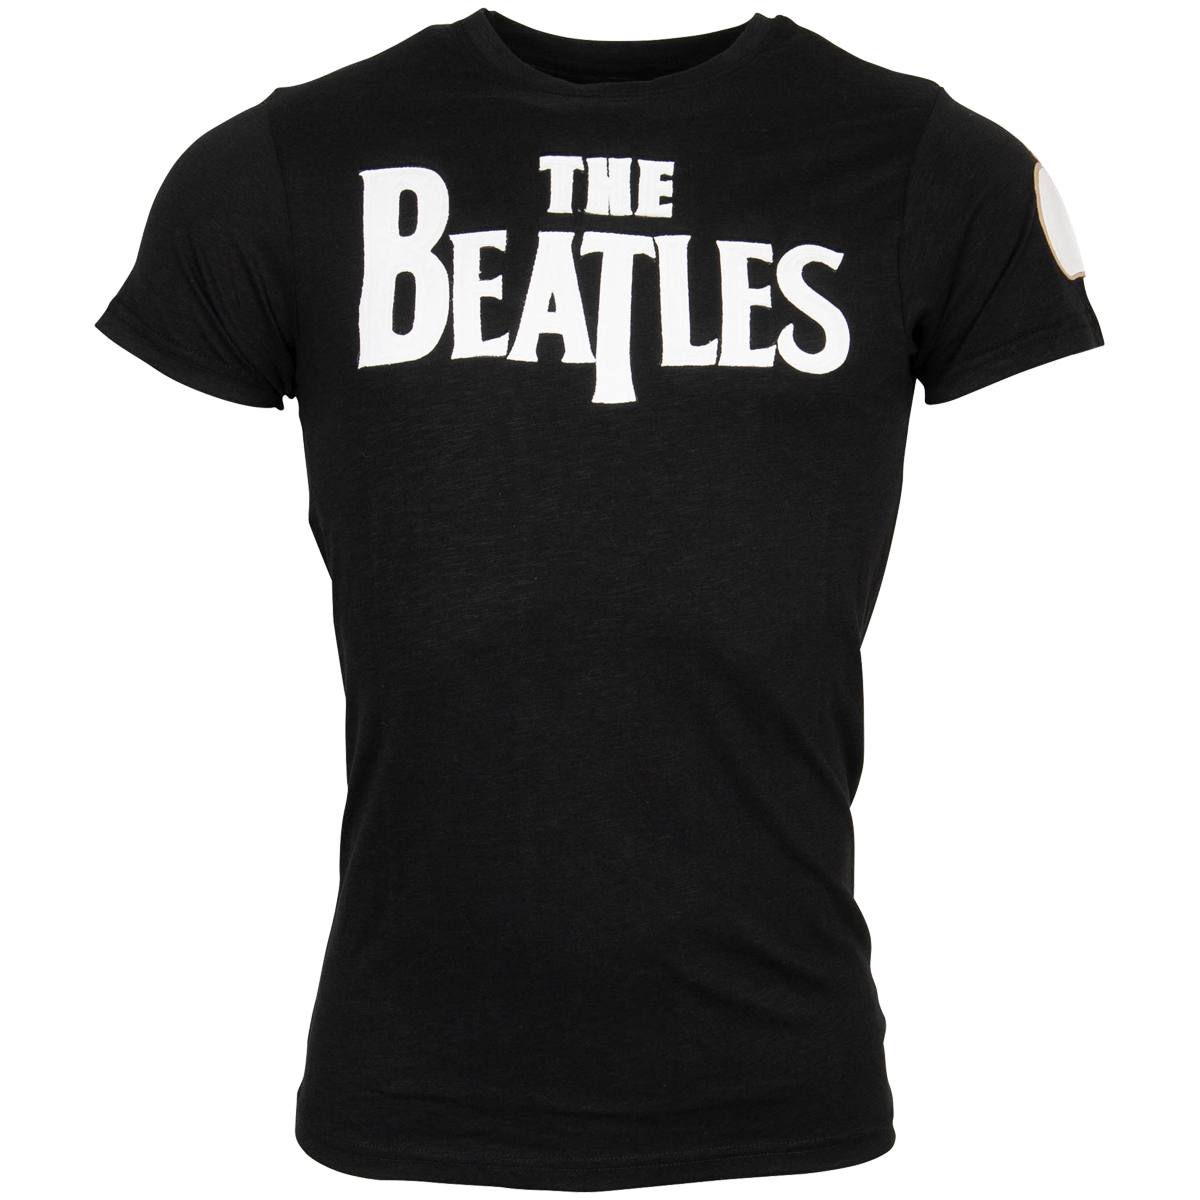 The Beatles - T-Shirt Drop T Logo - schwarz